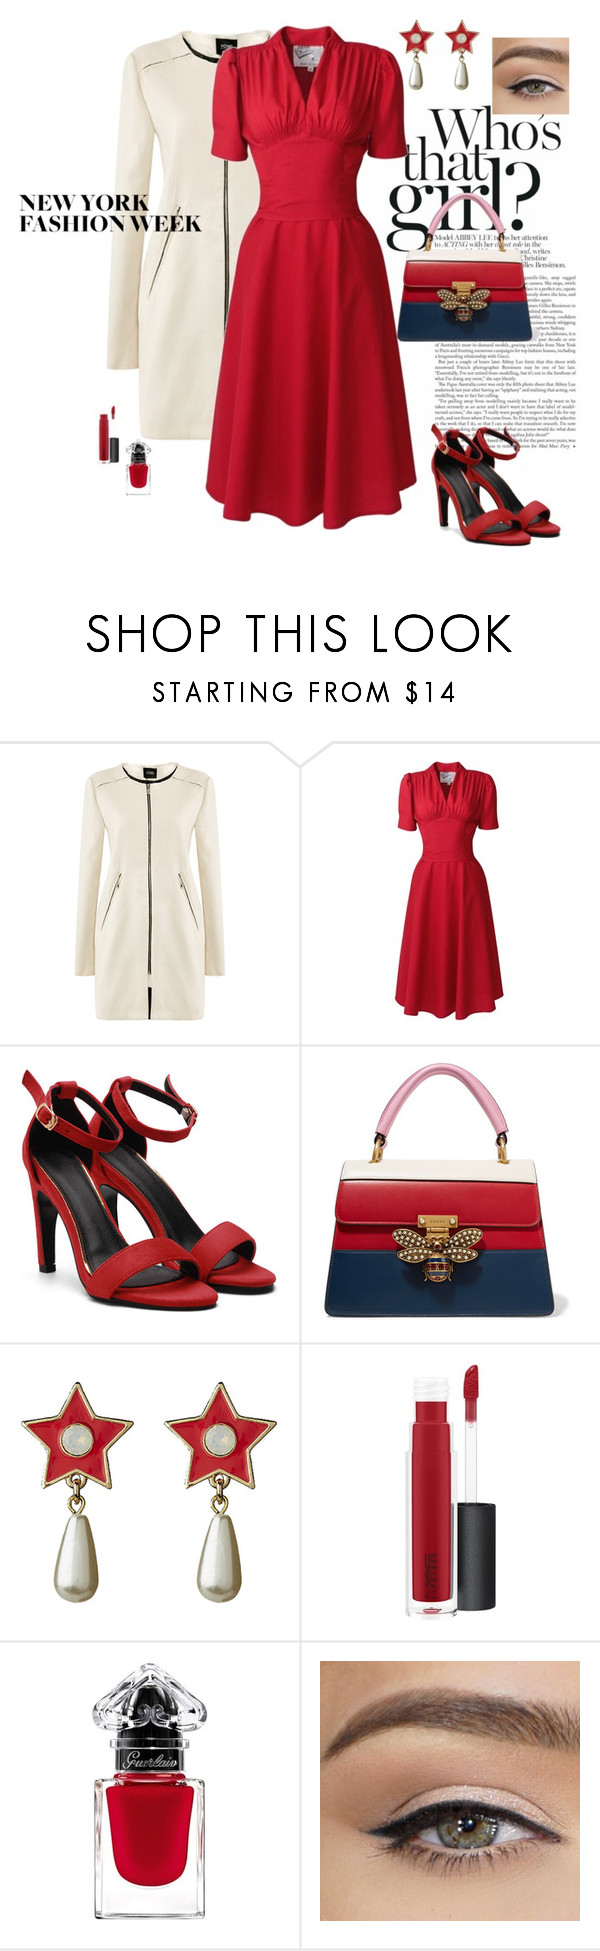 Simple but pretty John lewis Gucci and Polyvore